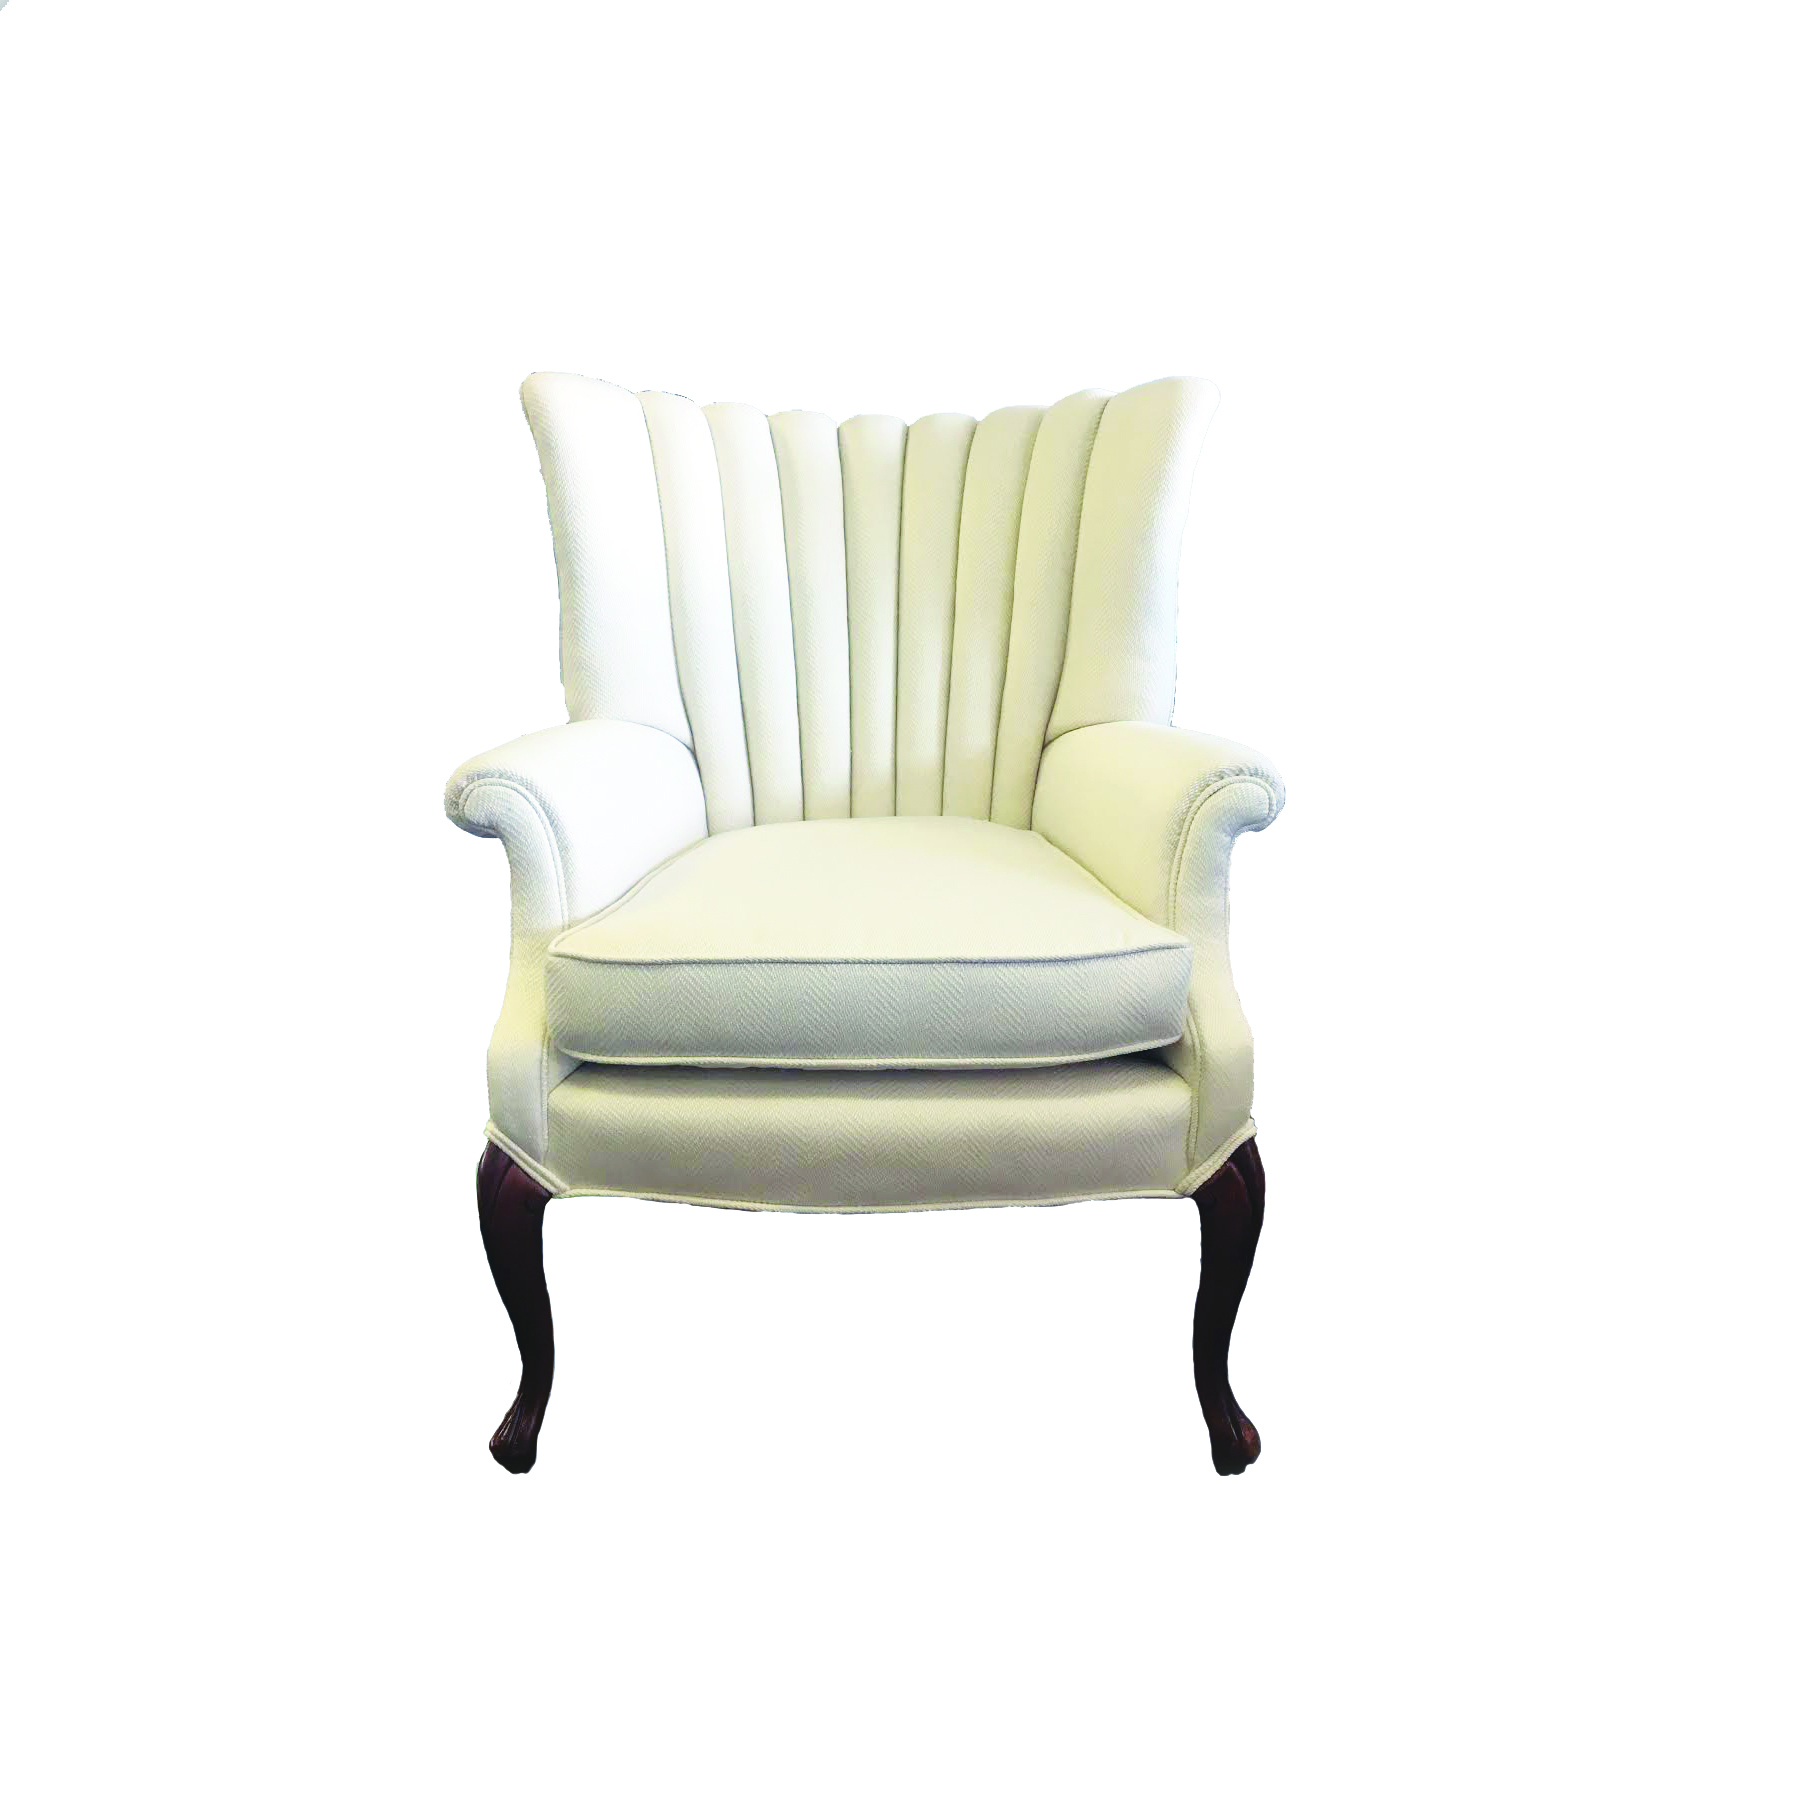 chair1white.jpg